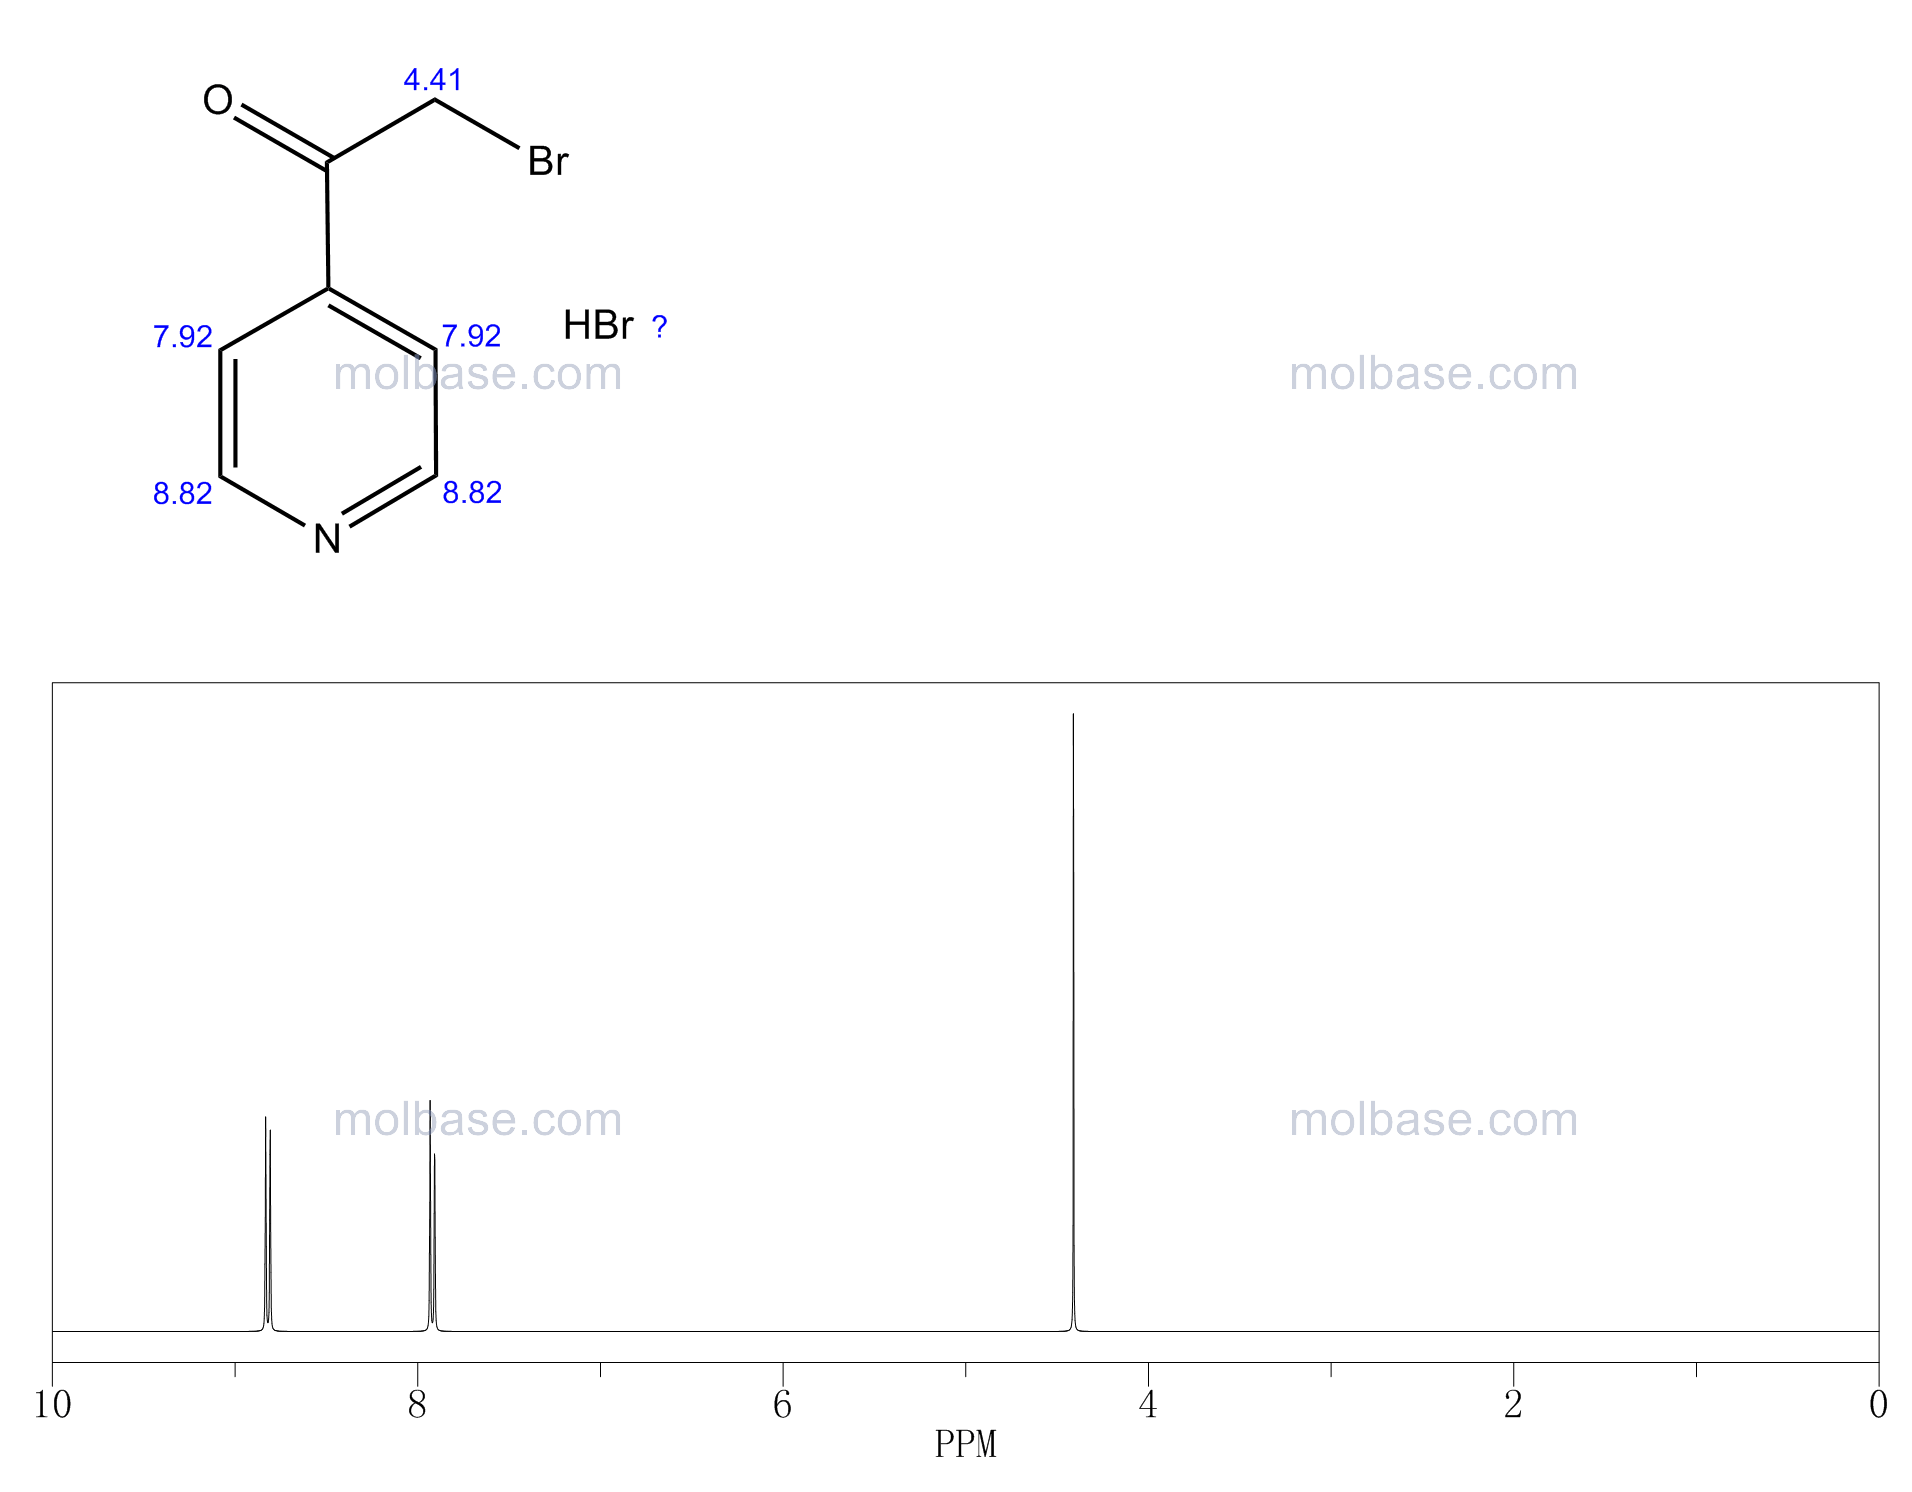 4-(Bromoacetyl)pyridine hydrobromide NMR spectra analysis, Chemical CAS NO. 5349-17-7 NMR spectral analysis, 4-(Bromoacetyl)pyridine hydrobromide C-NMR spectrum